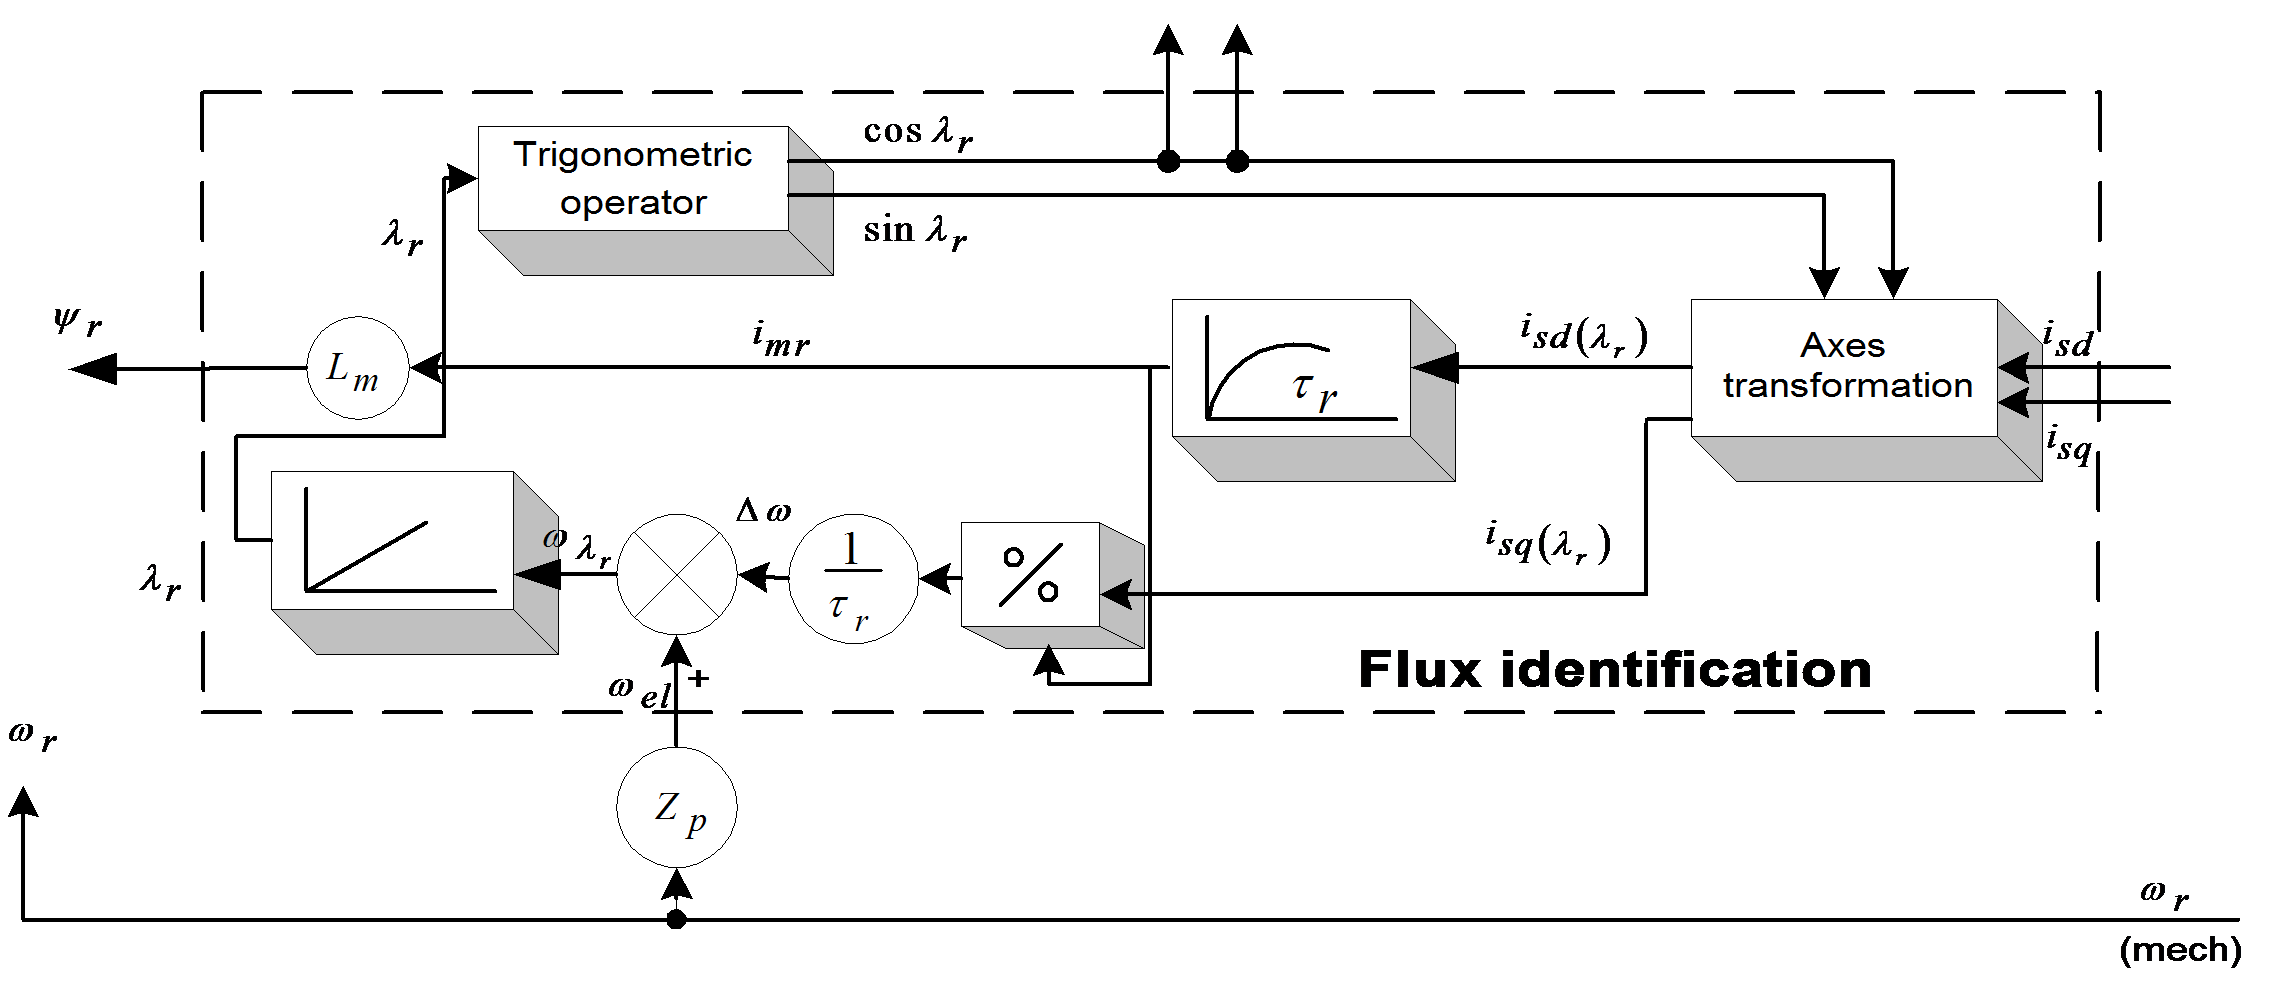 Chapter 7 Modelling Induction Motors Constant Airgap Motor Equivalent Circuit Flux Identification Model In The Case Of A Rotor Fluxoriented Coordinate System